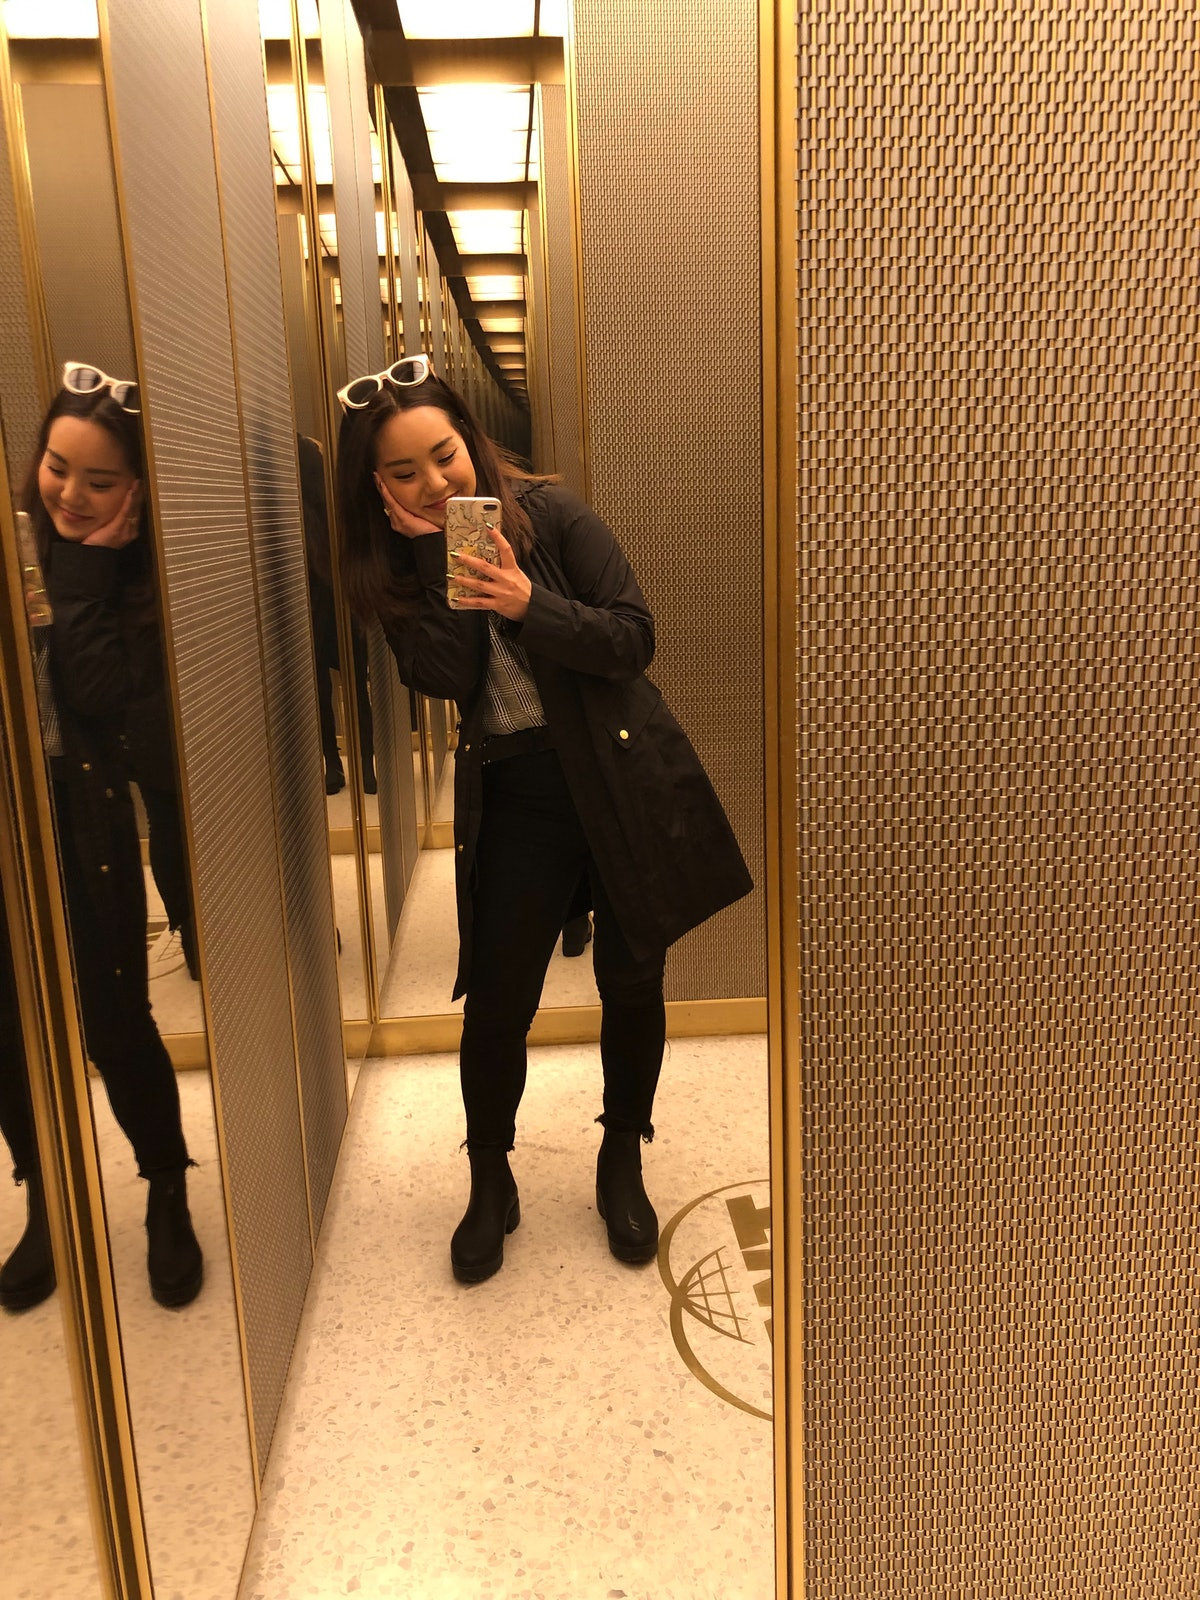 A woman with white sunglasses on her head wearing a long black coat, black jeans, and black boots takes a selfie in an elevator mirror.